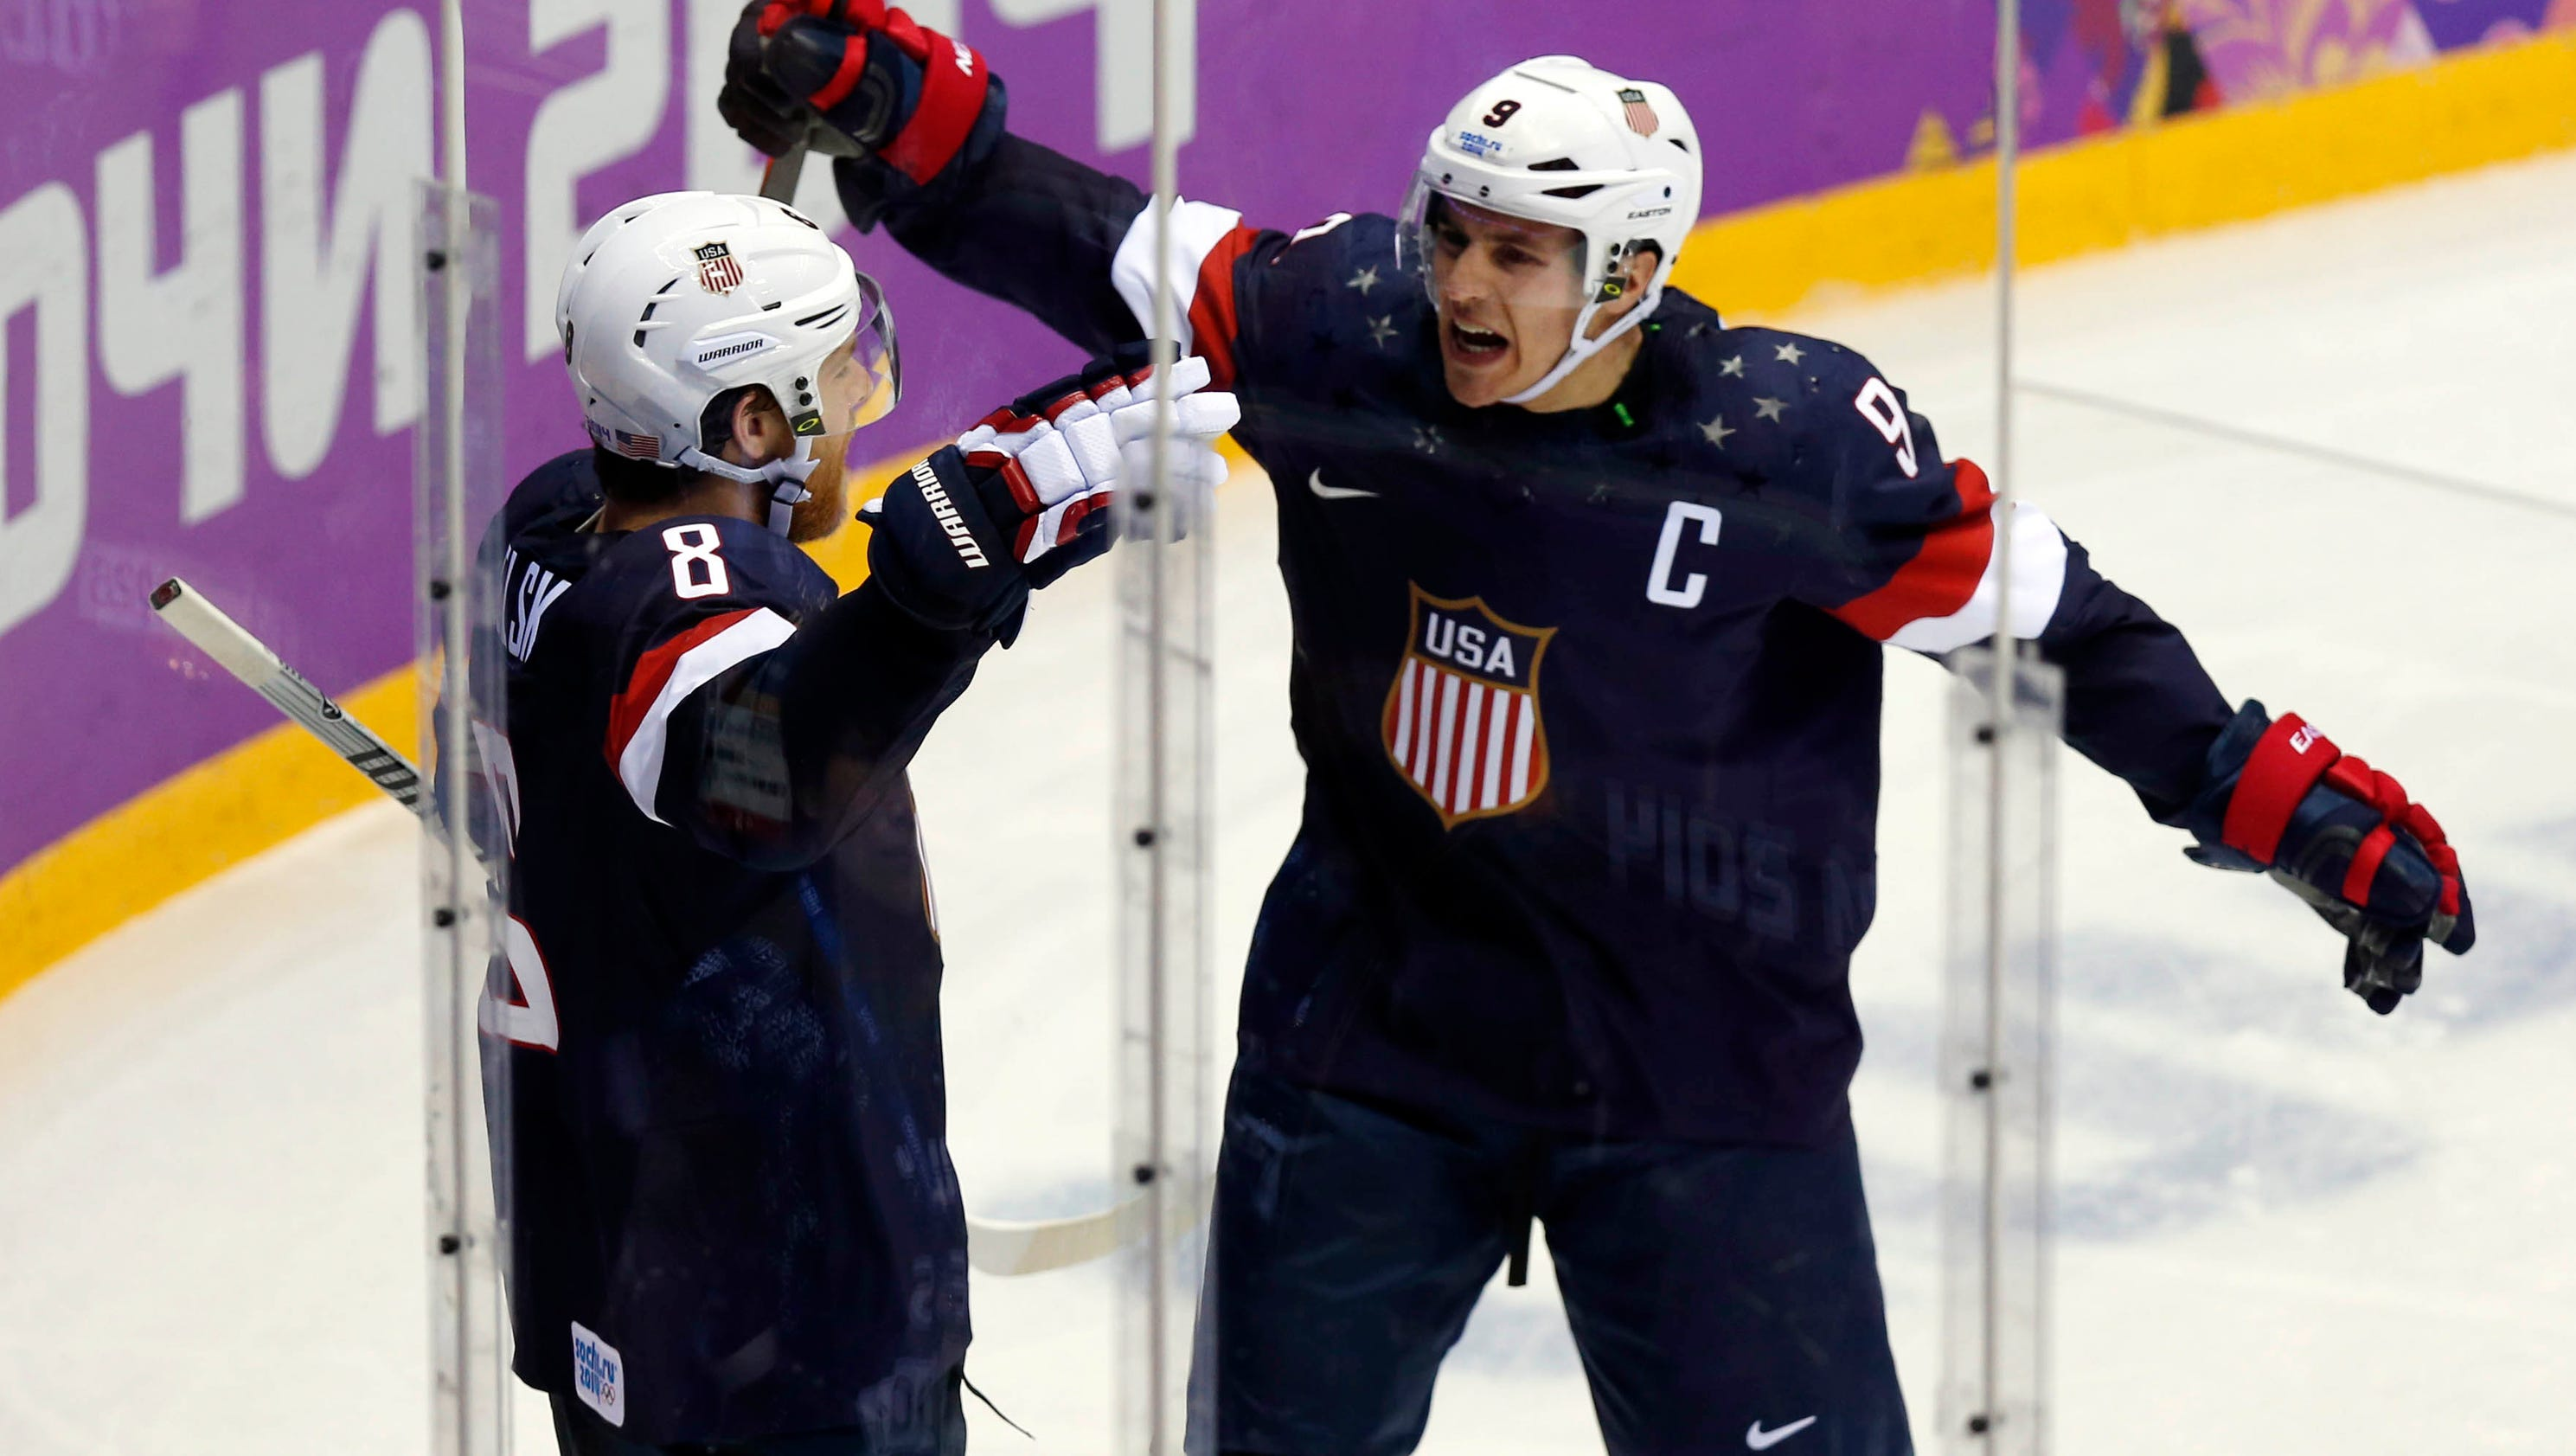 636086589281145969-usp-olympics--ice-hockey-men-s-prelim-round-usa-vs